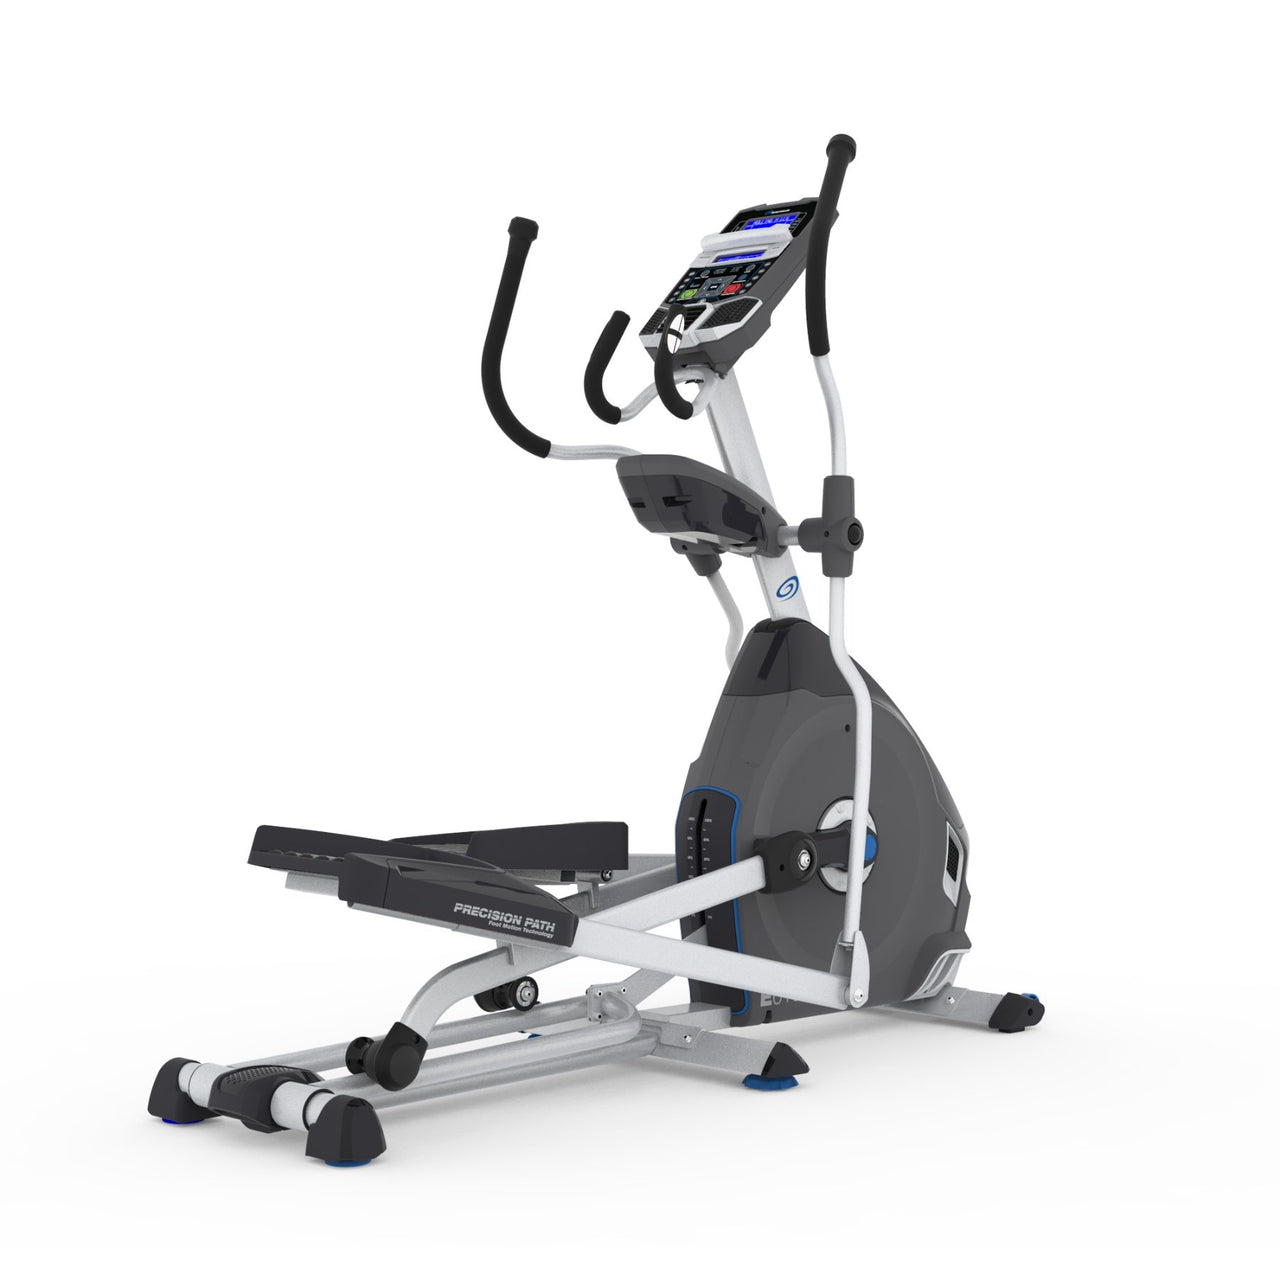 Nautilus Fitness E616 Elliptical Trainer